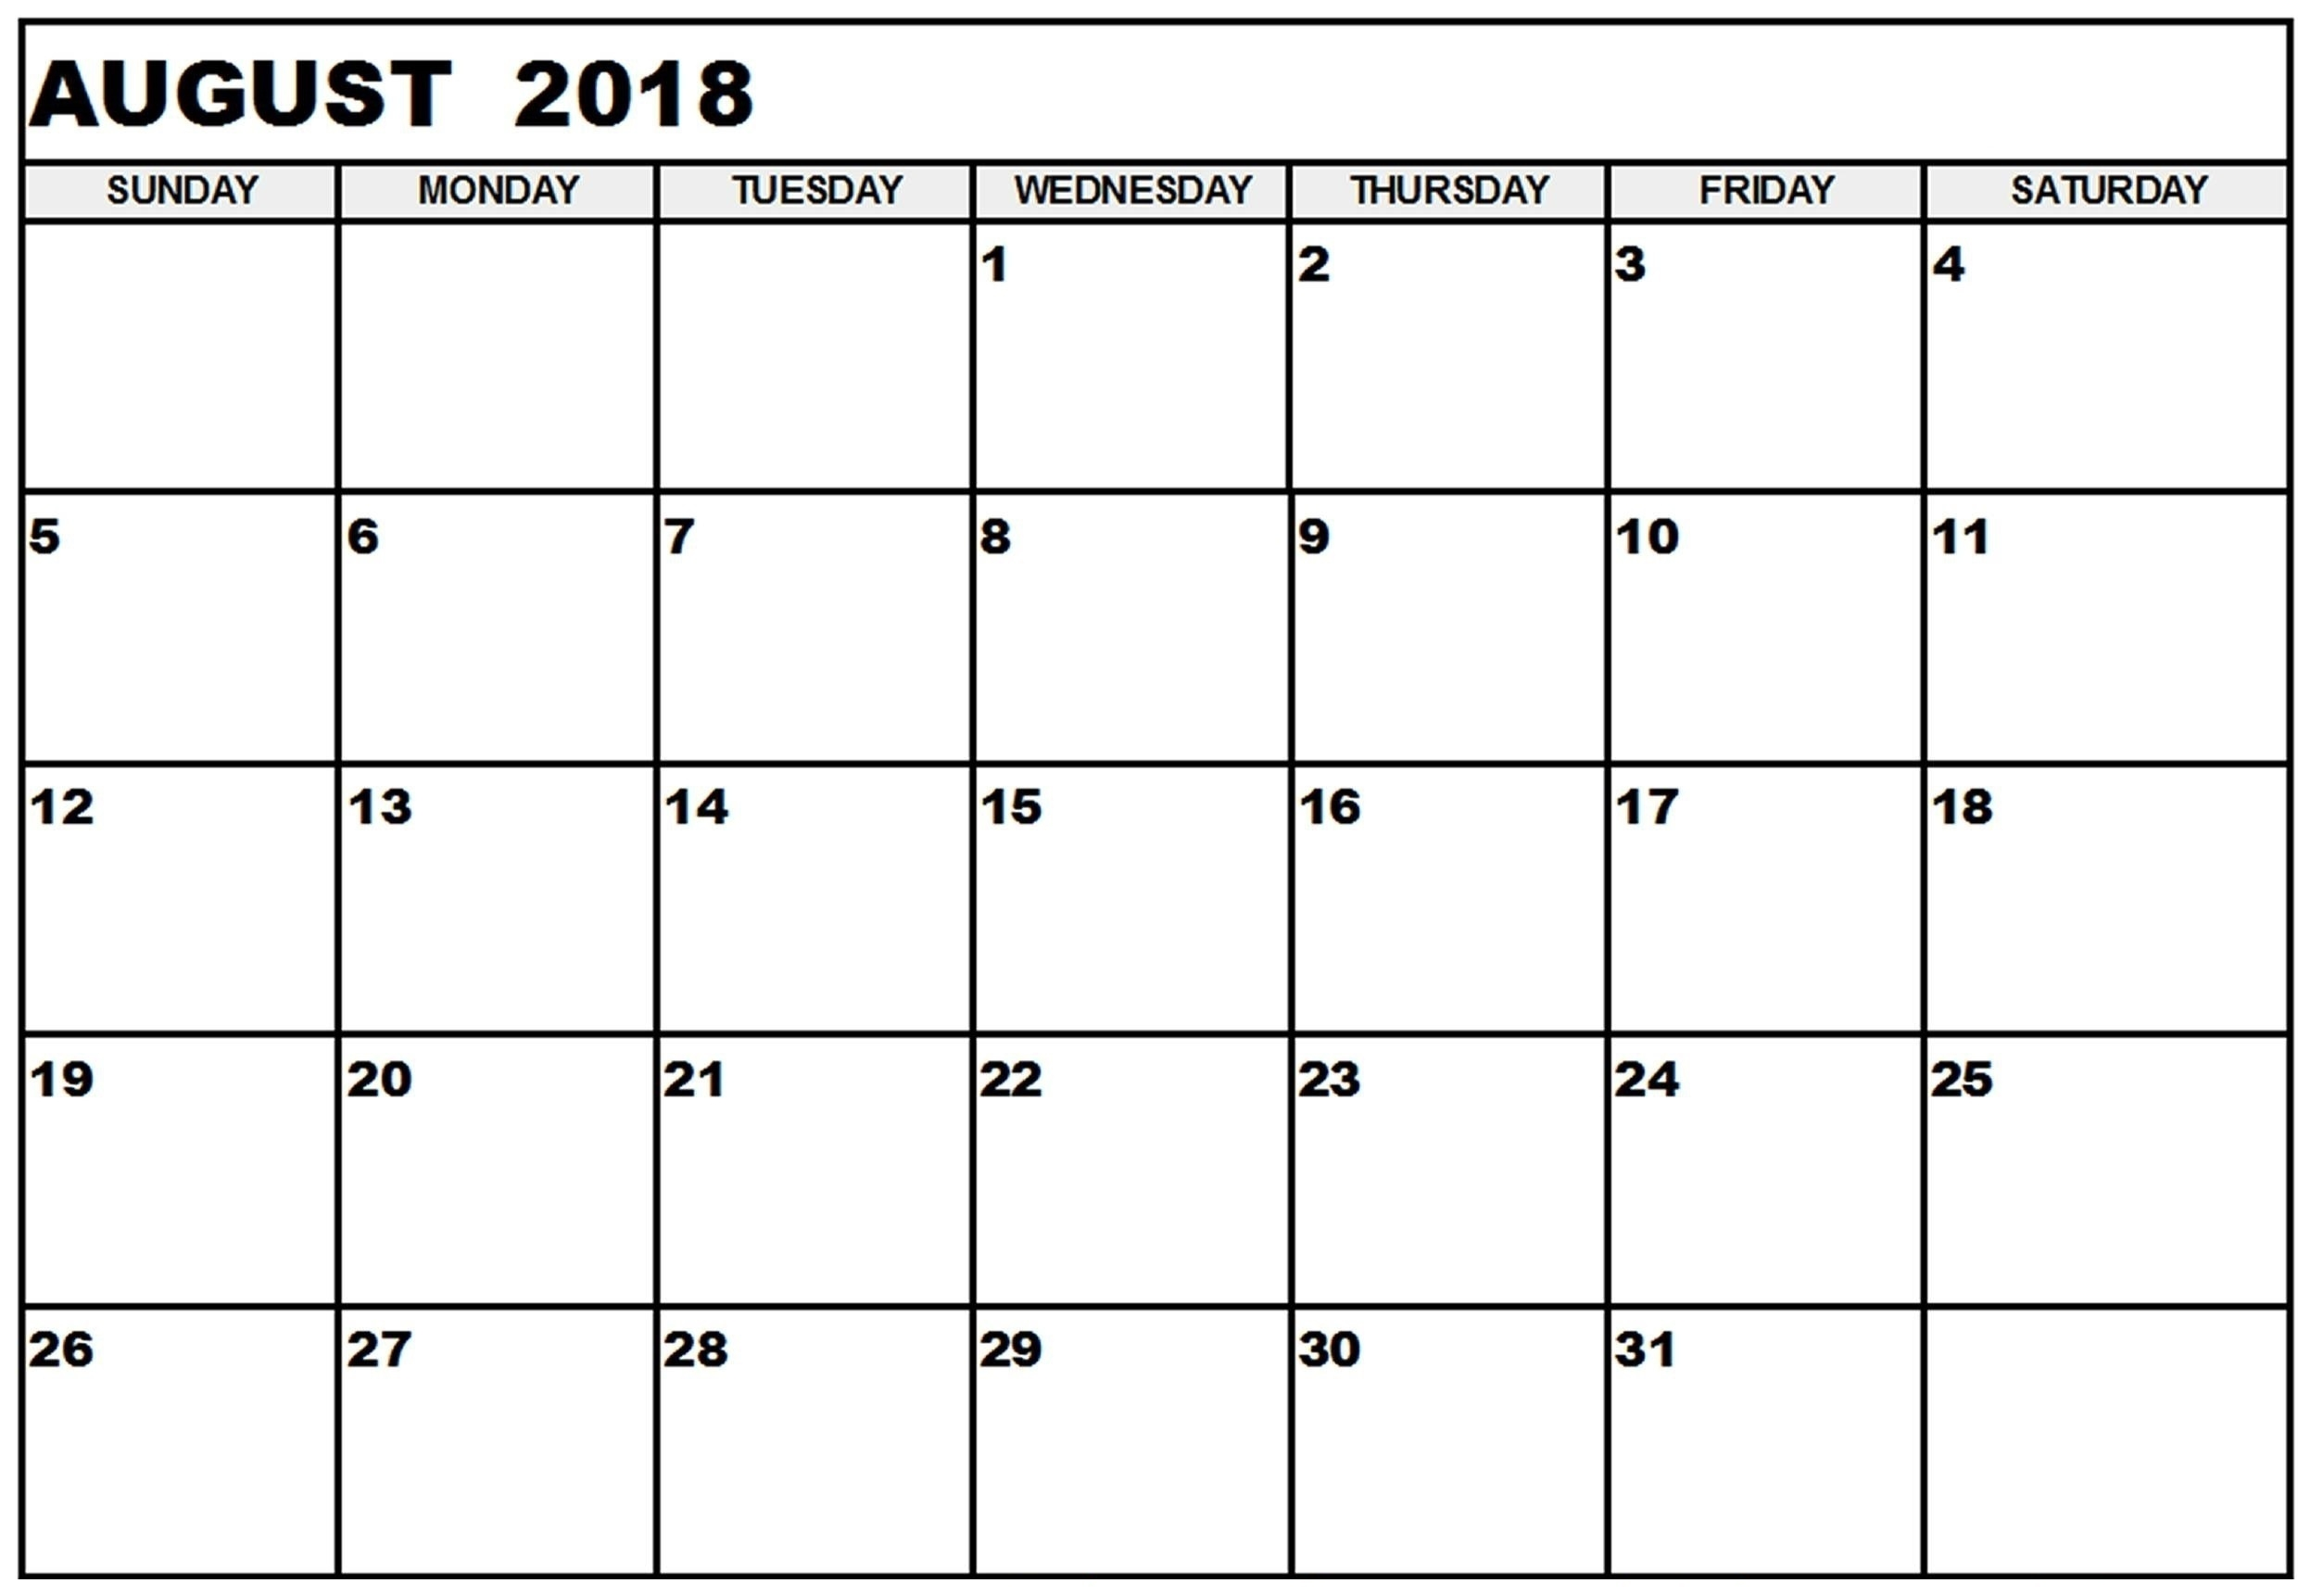 august 2018 free printable calendar calendar printable with Free Pretty Printable Calendars August 2018 erdferdf